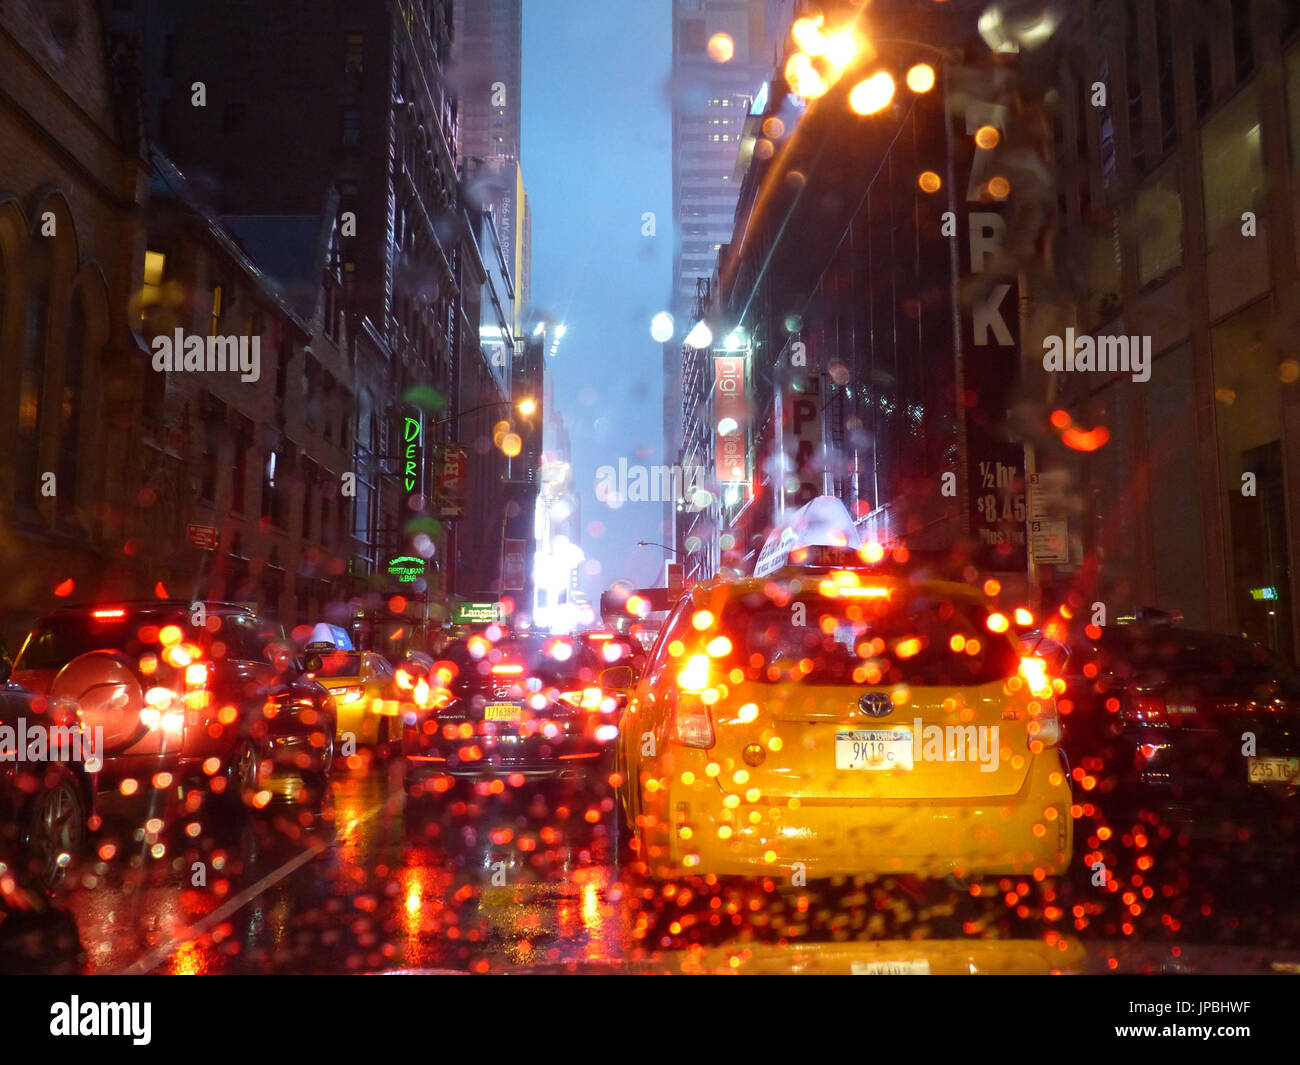 Rain drops on car's windshield are illuminated red by taxicab brake lights - Stock Image